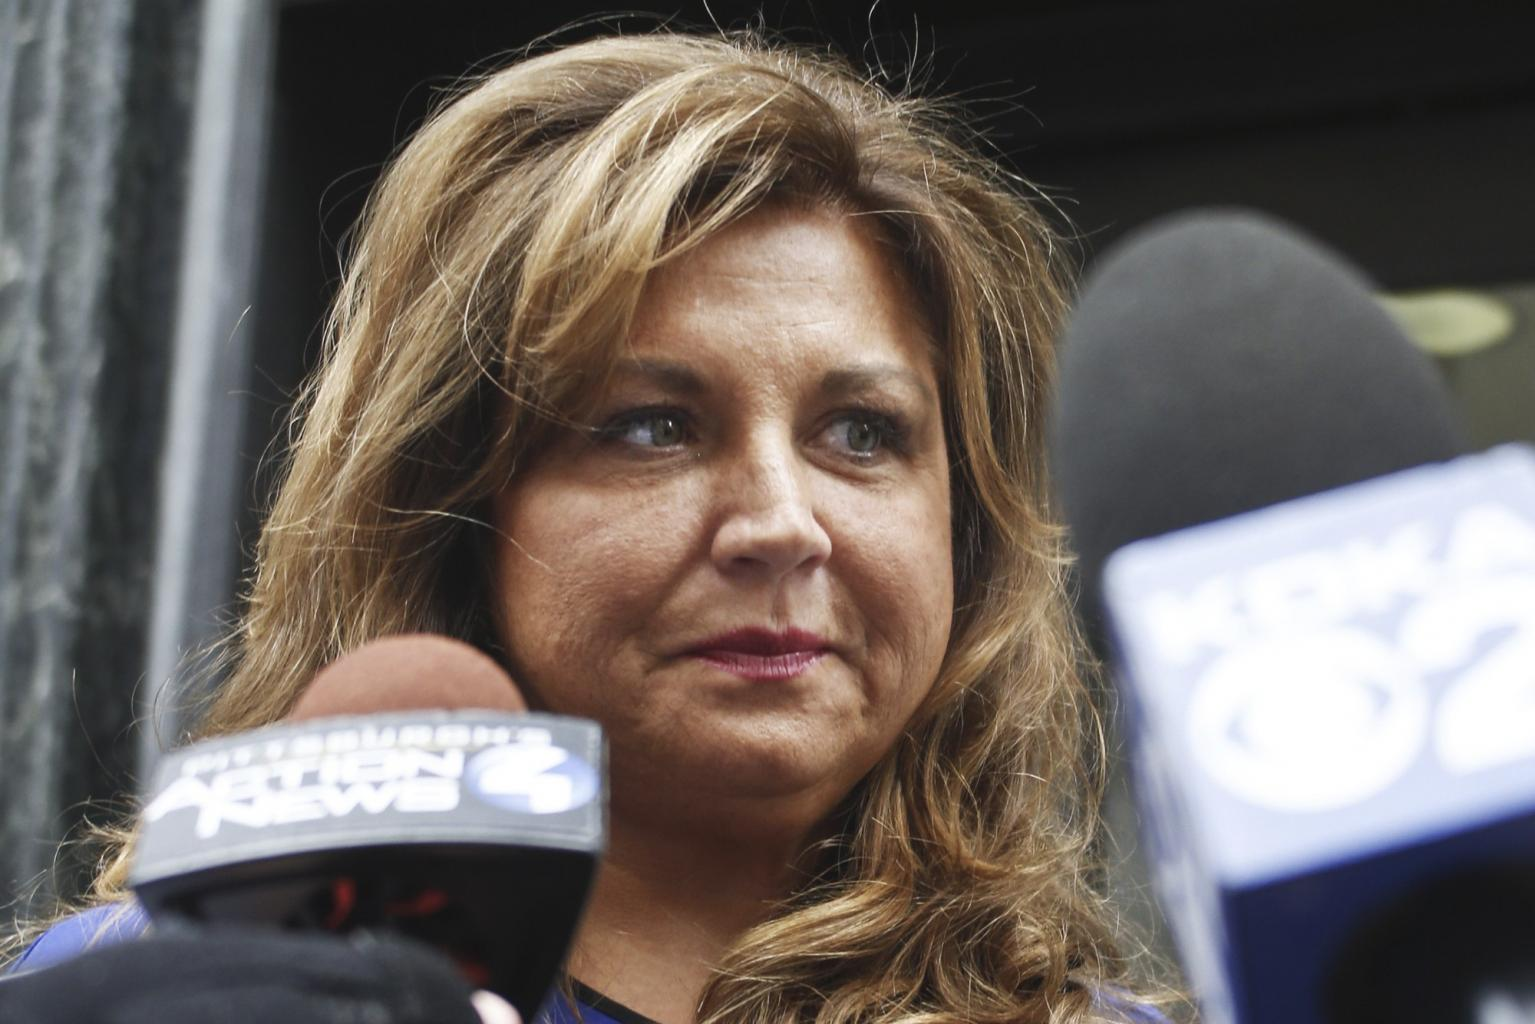 Abby Lee Miller Reports to Prison Where She Will Serve a 366-Day Sentence for Bankruptcy Fraud